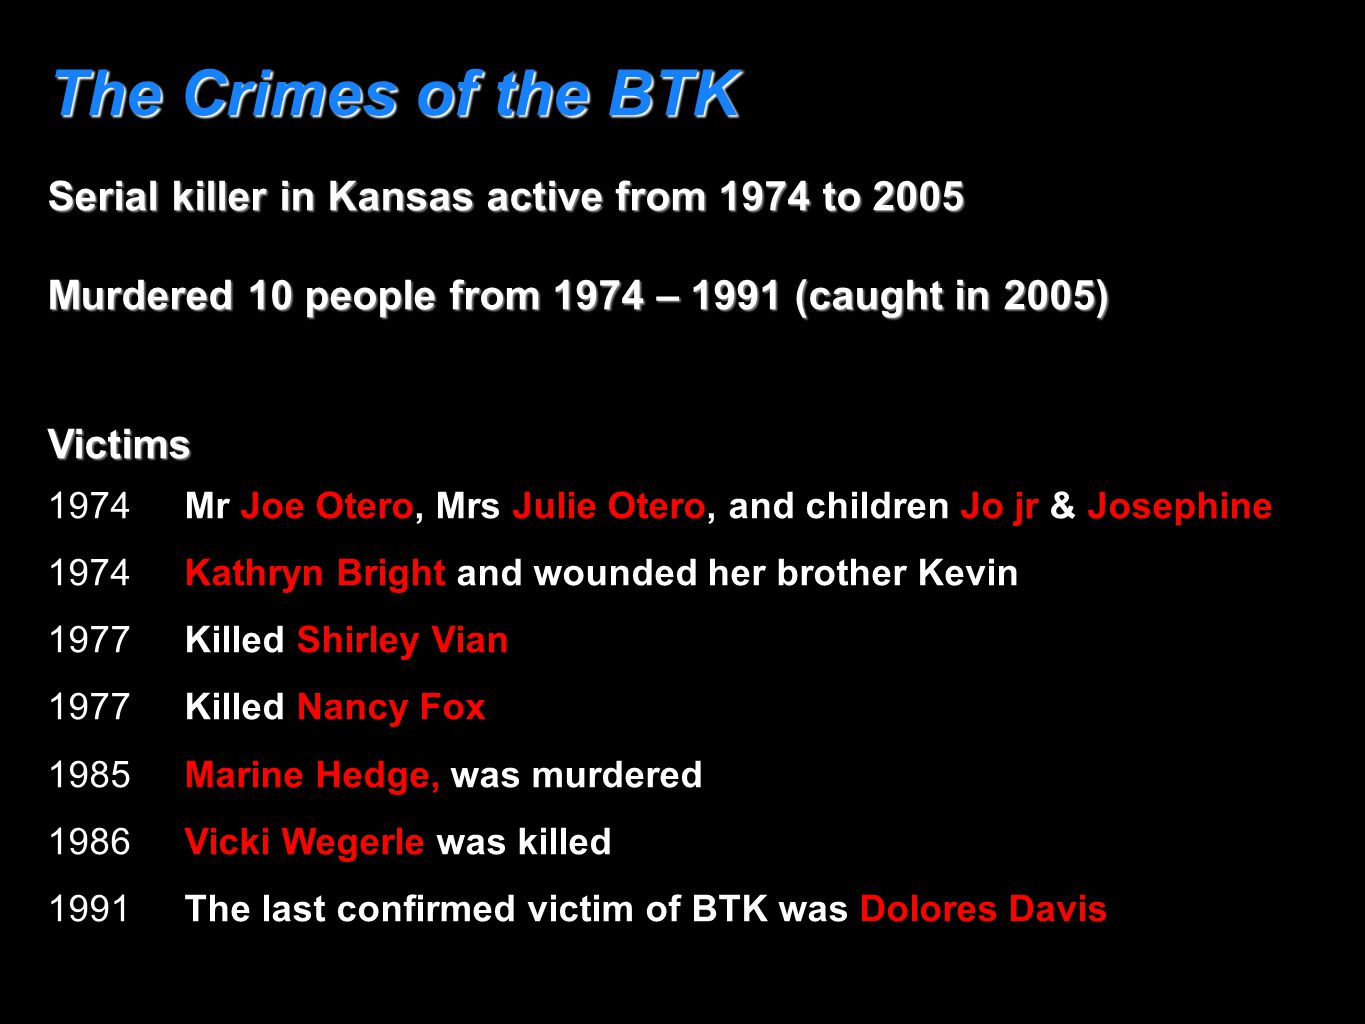 The Crimes of the BTK Serial killer in Kansas active from 1974 to 2005 Murdered 10 people from 1974 – 1991 (caught in 2005) Victims 1974 Mr Joe Otero,